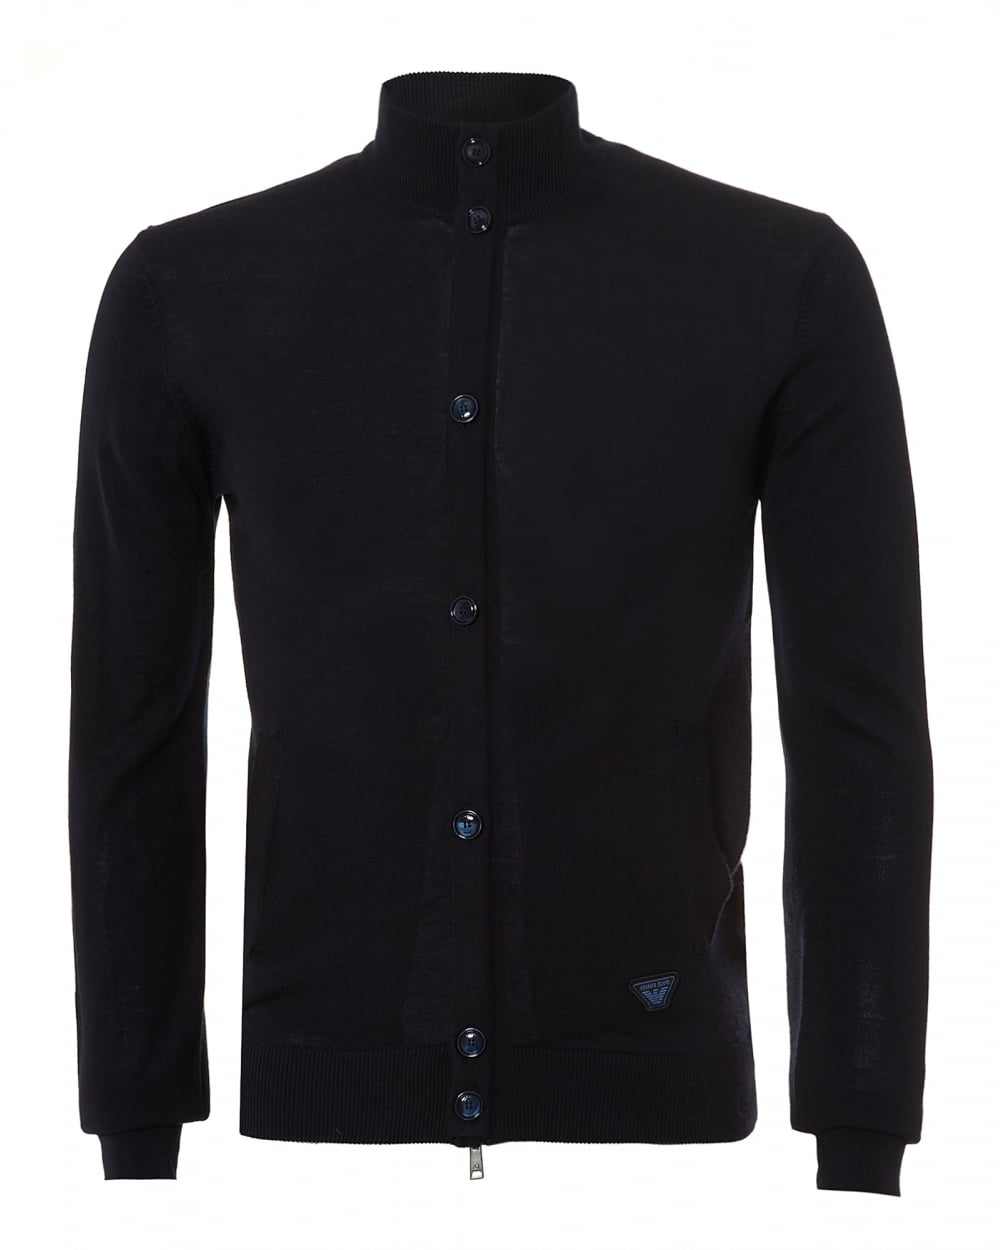 Armani Jeans Mens Zip Up Cardigan, Button Detail Navy Knit